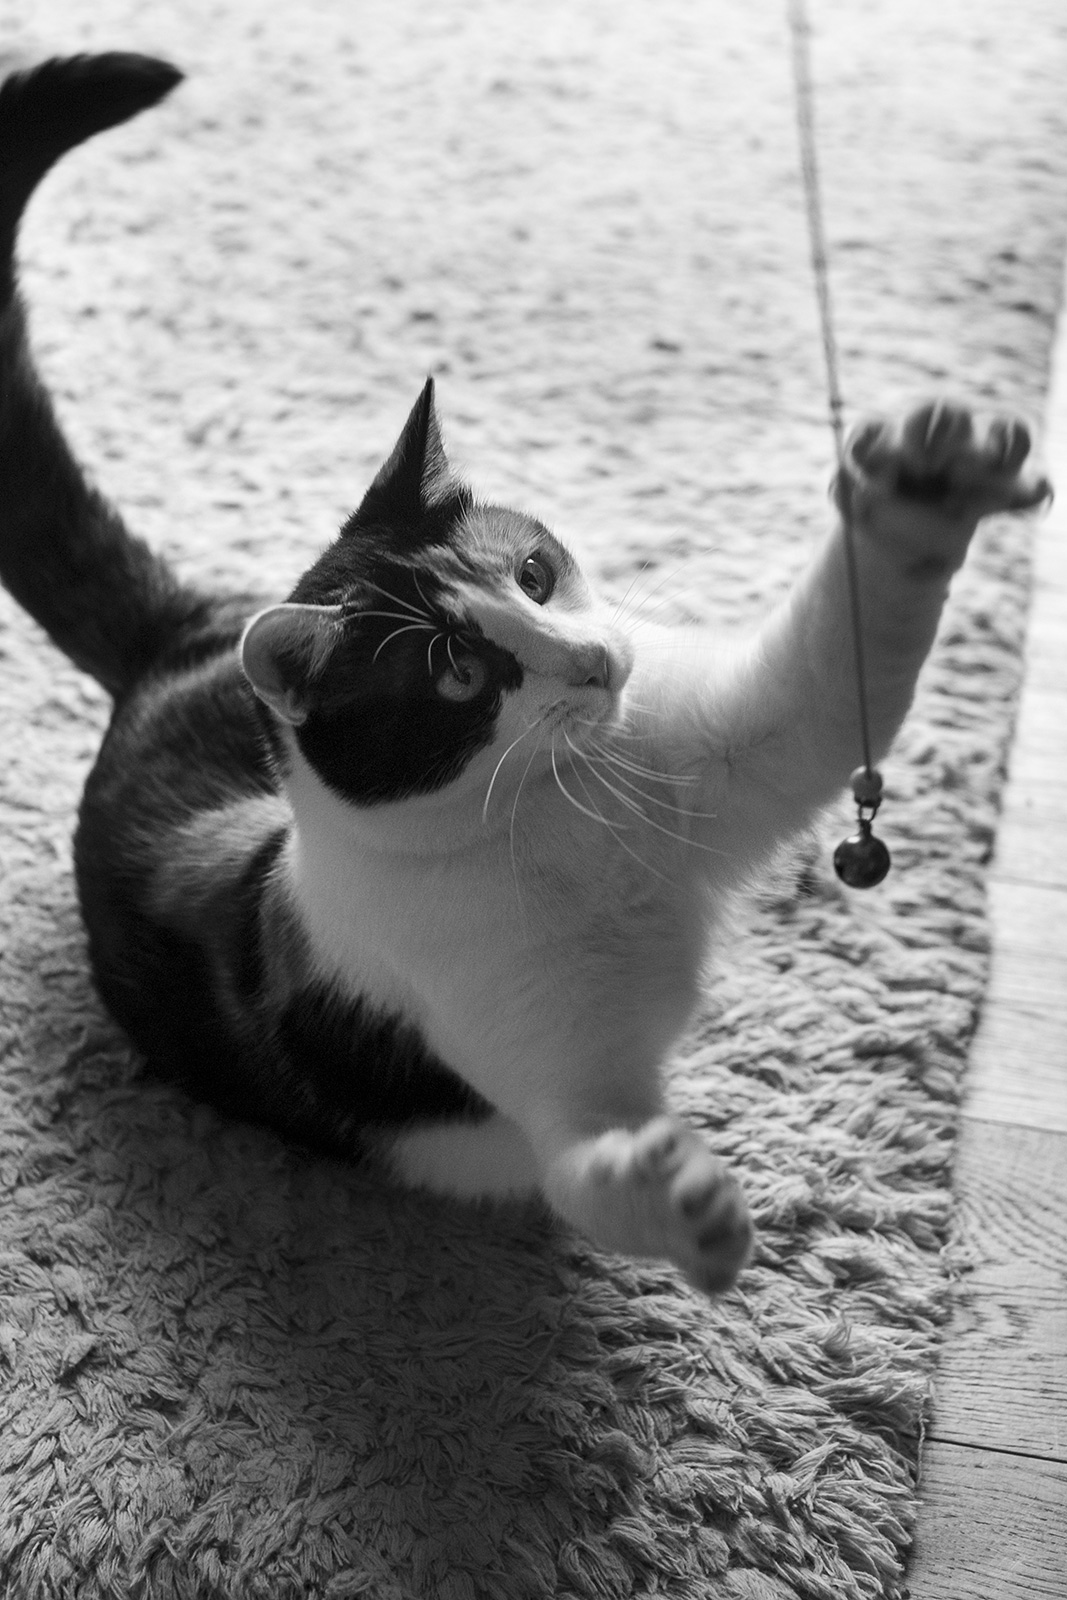 cat swiping at bell toy black and white documentary portrait  © P. Maton 2019 eyeteeth.net